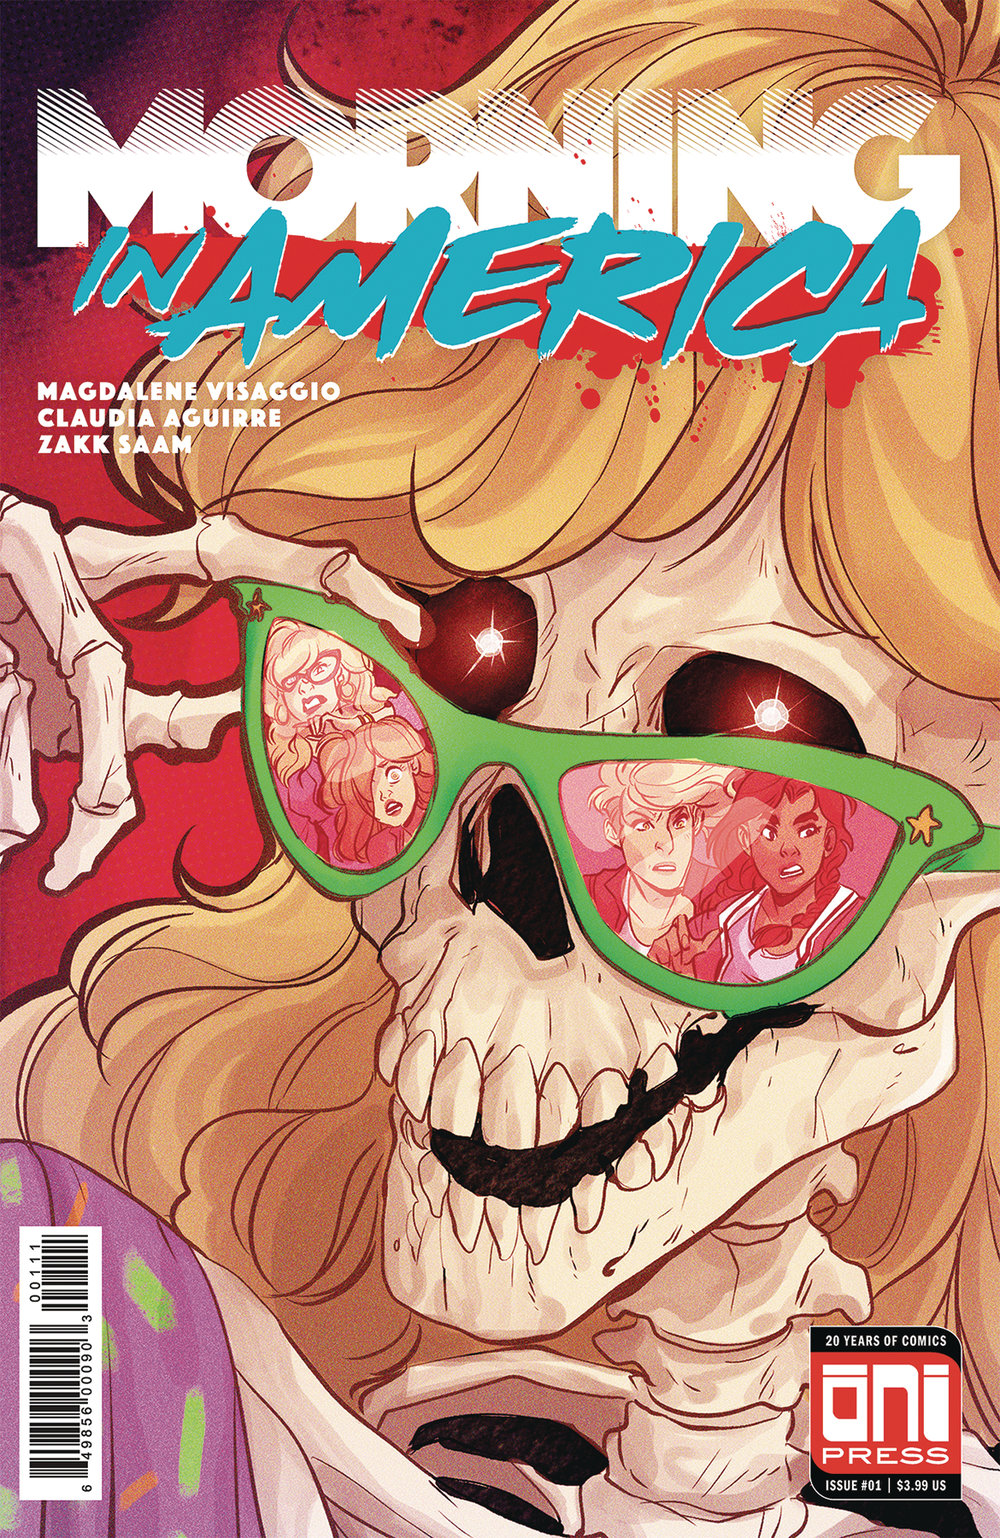 Morning in America #1  is out 3/6/2019.